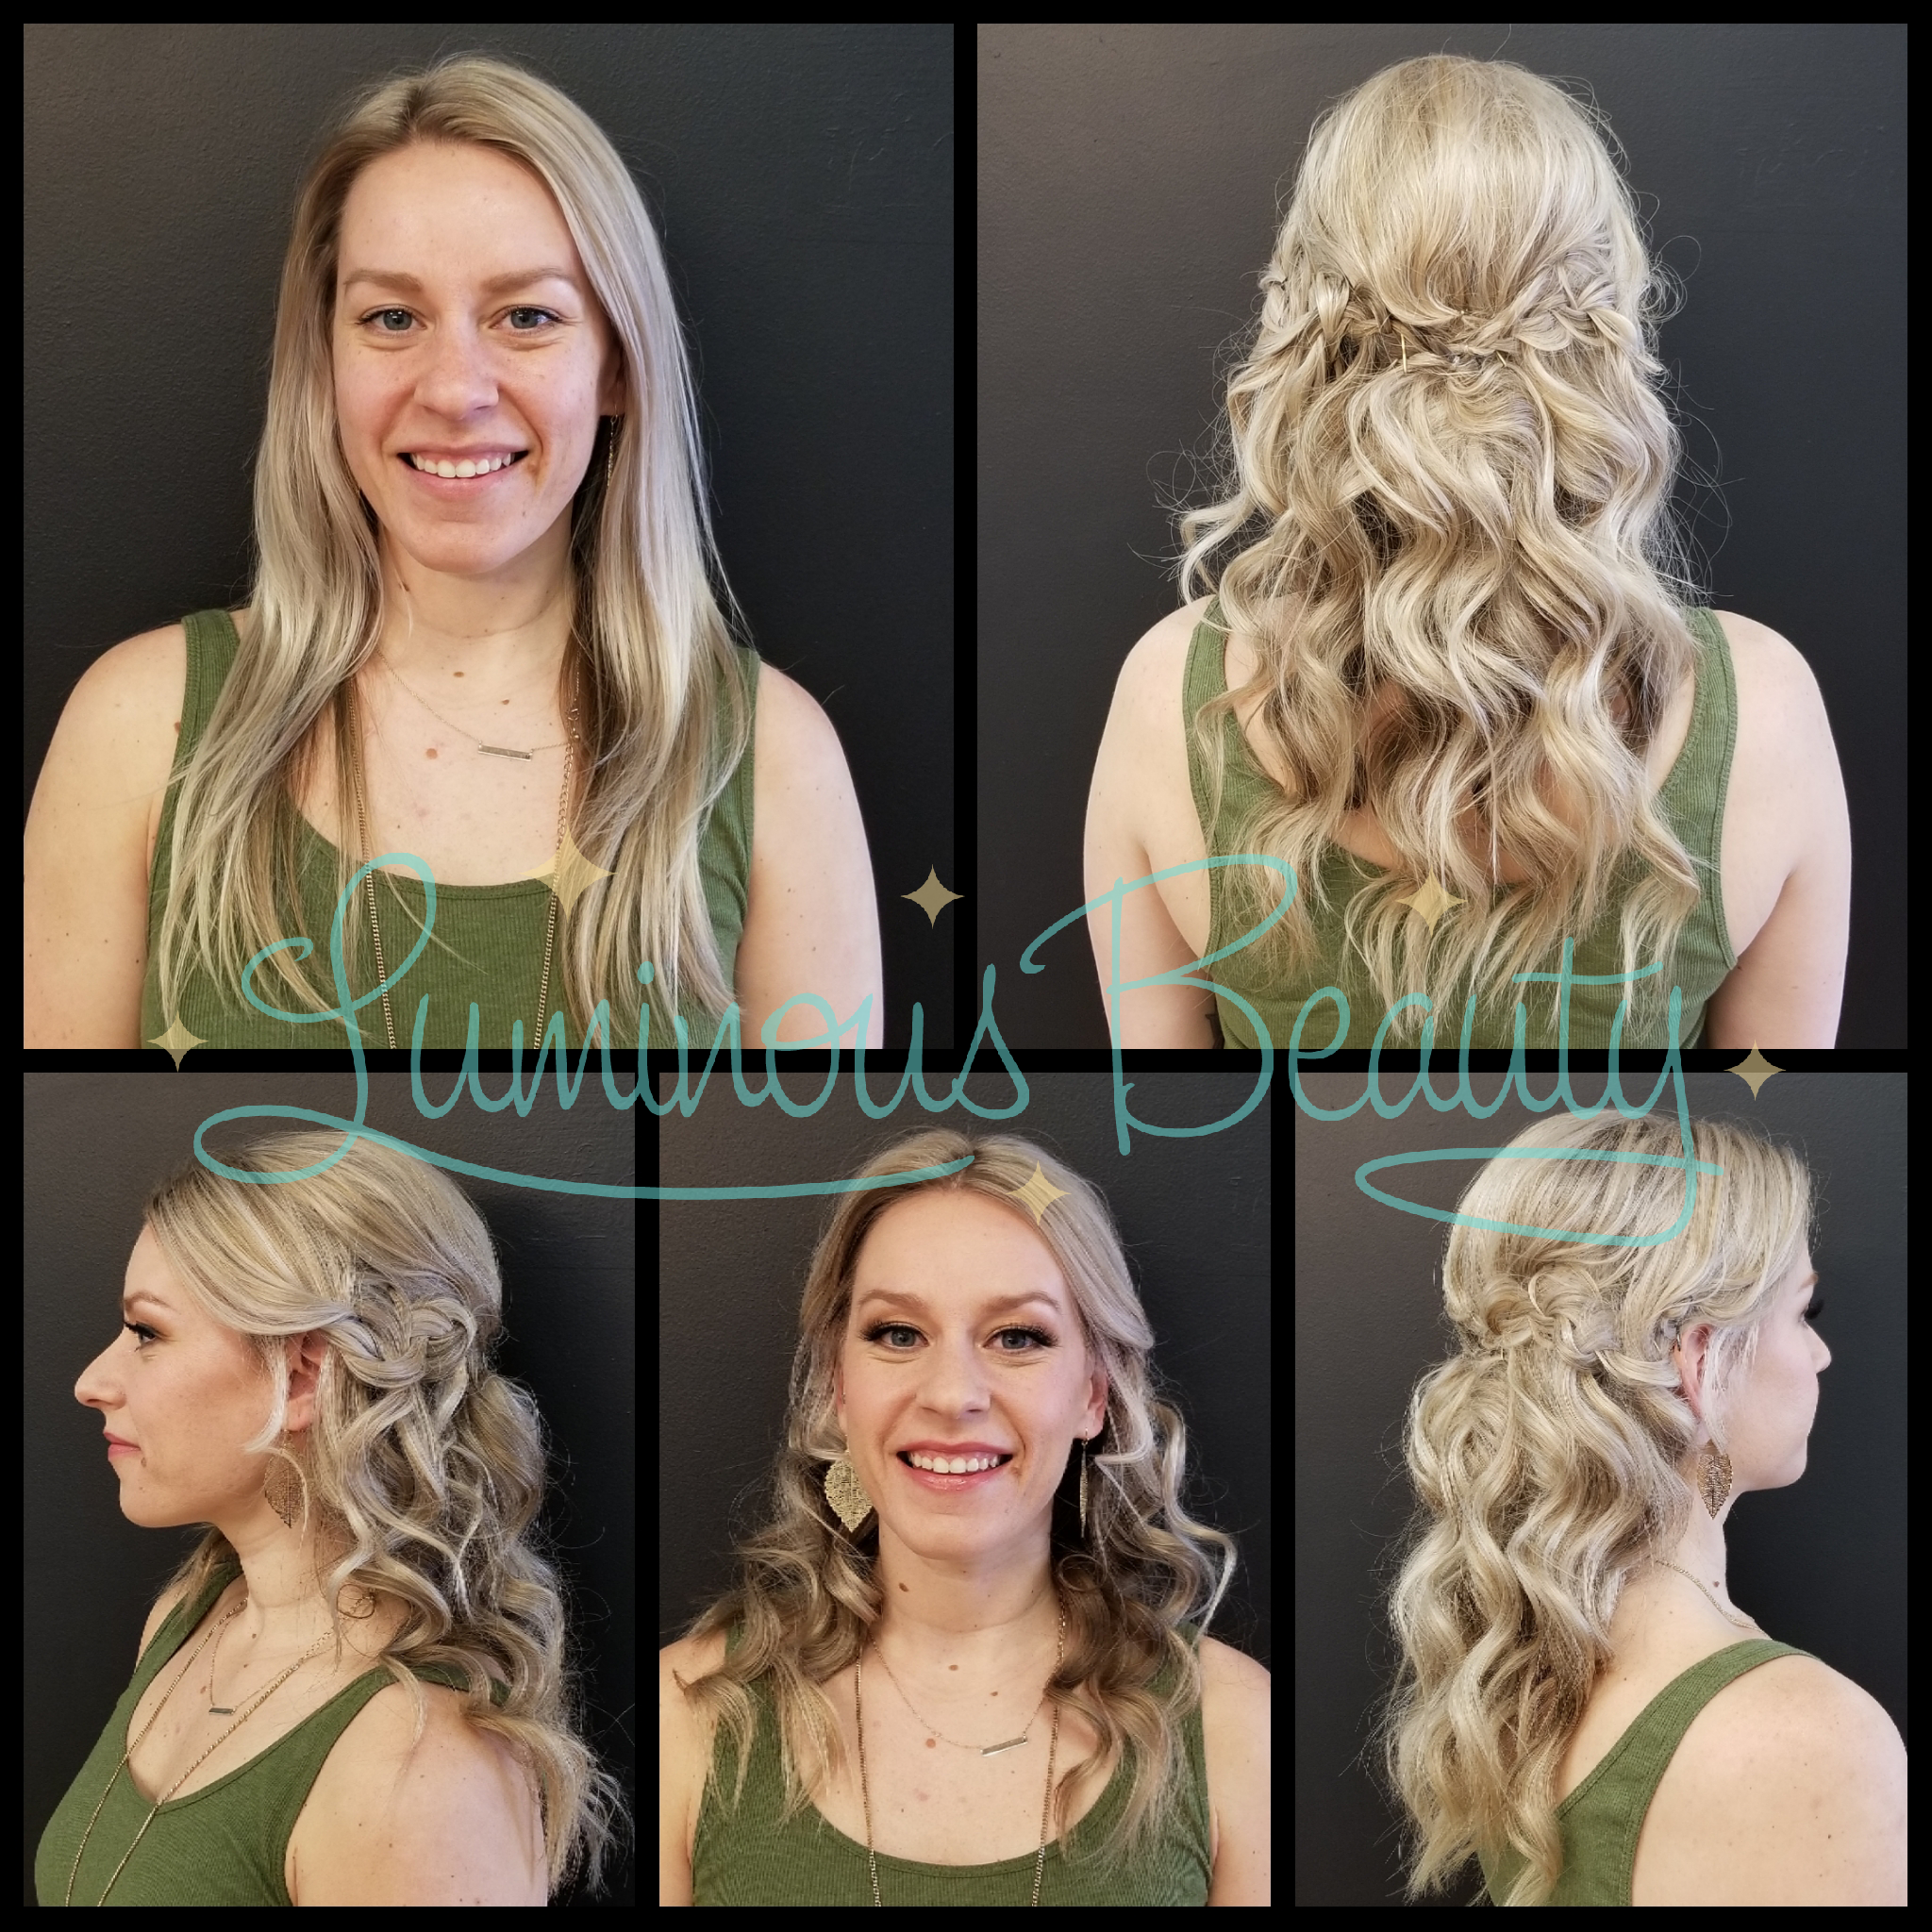 Bridal Trial Run. Makeup with Golden Eyes and Mink False Lashes. Luminous Beauty Makeup Artist and Stylist. Cascading Half -Up Bridal Hairstyle with Braids..png